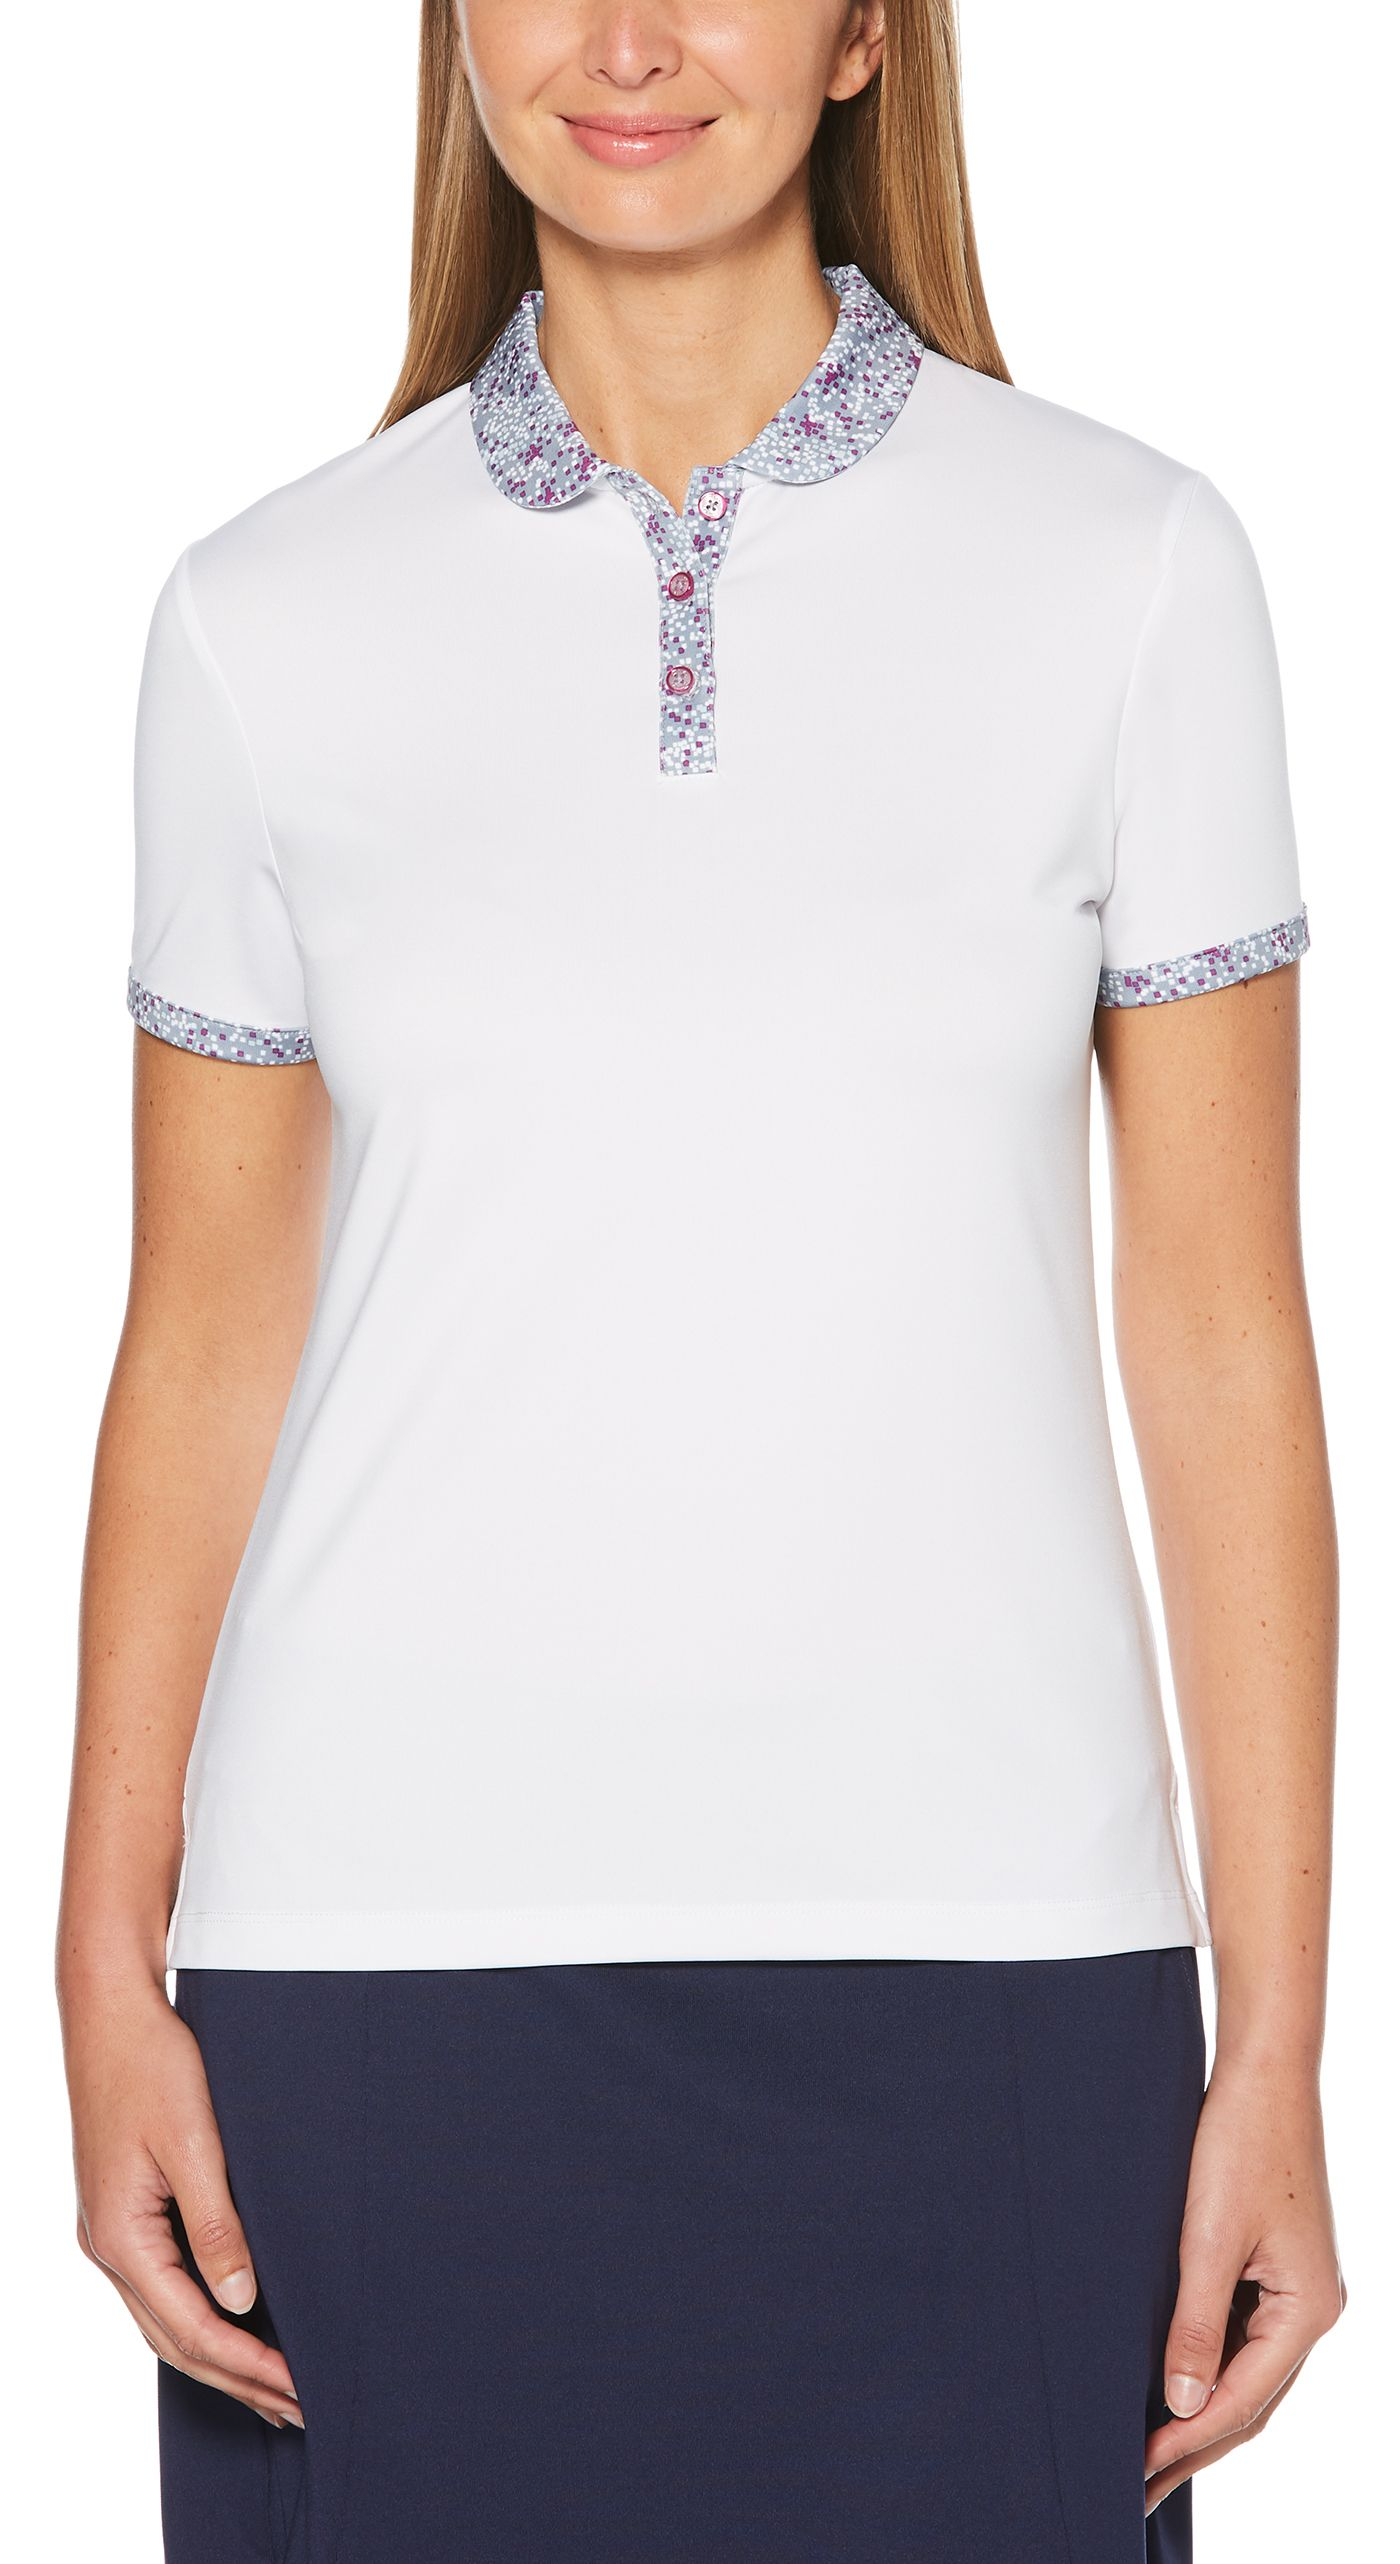 Callaway Women's Solid Golf Polo - Extended Sizes